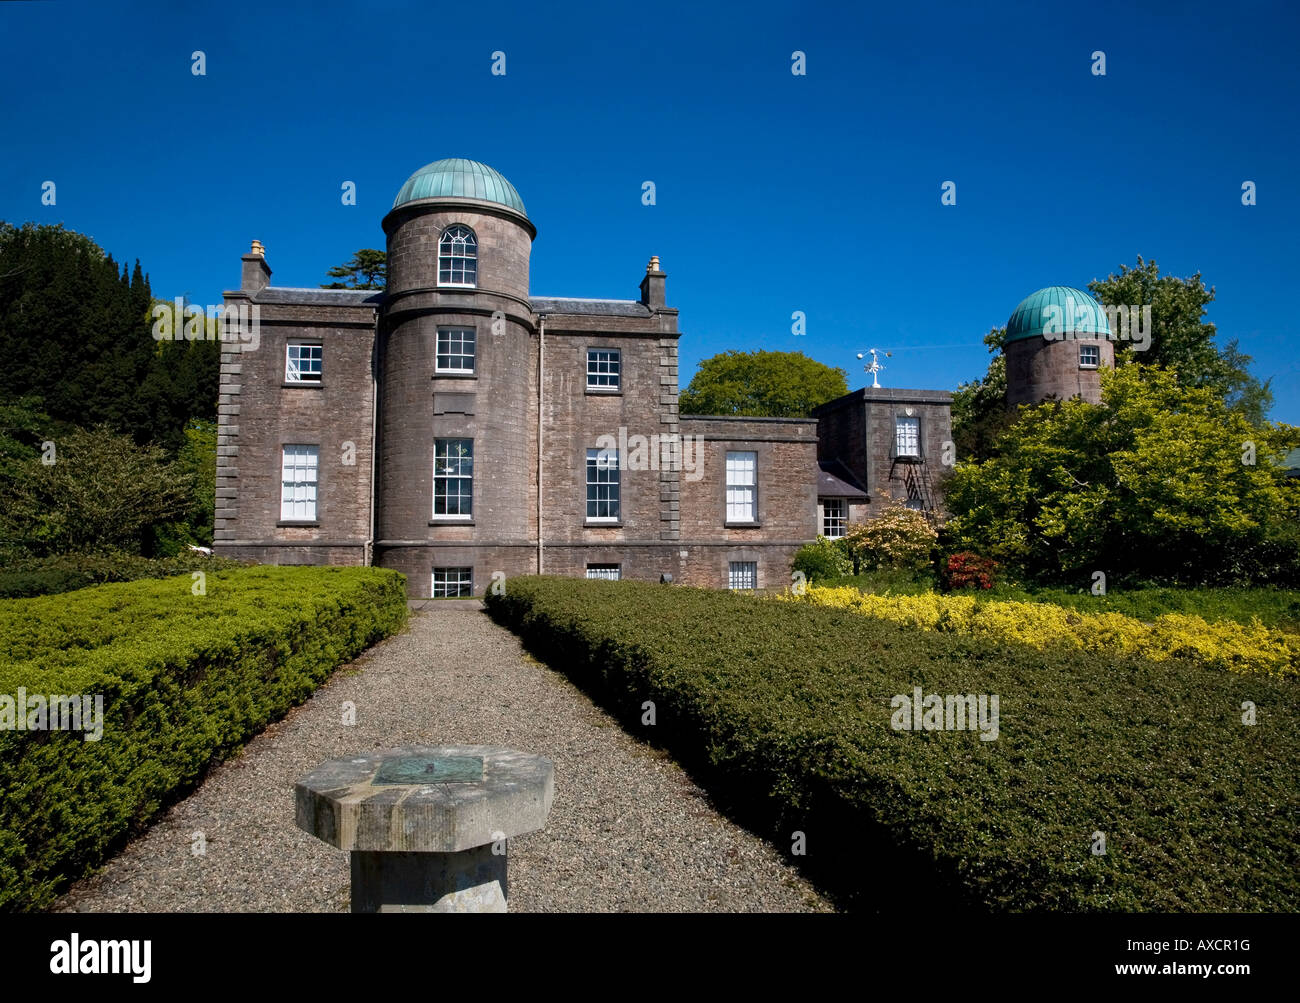 Armagh Observatory and Planetarium, Built 1789, Established by Archbishop Robinson, Armagh, County Armagh, Ireland - Stock Image